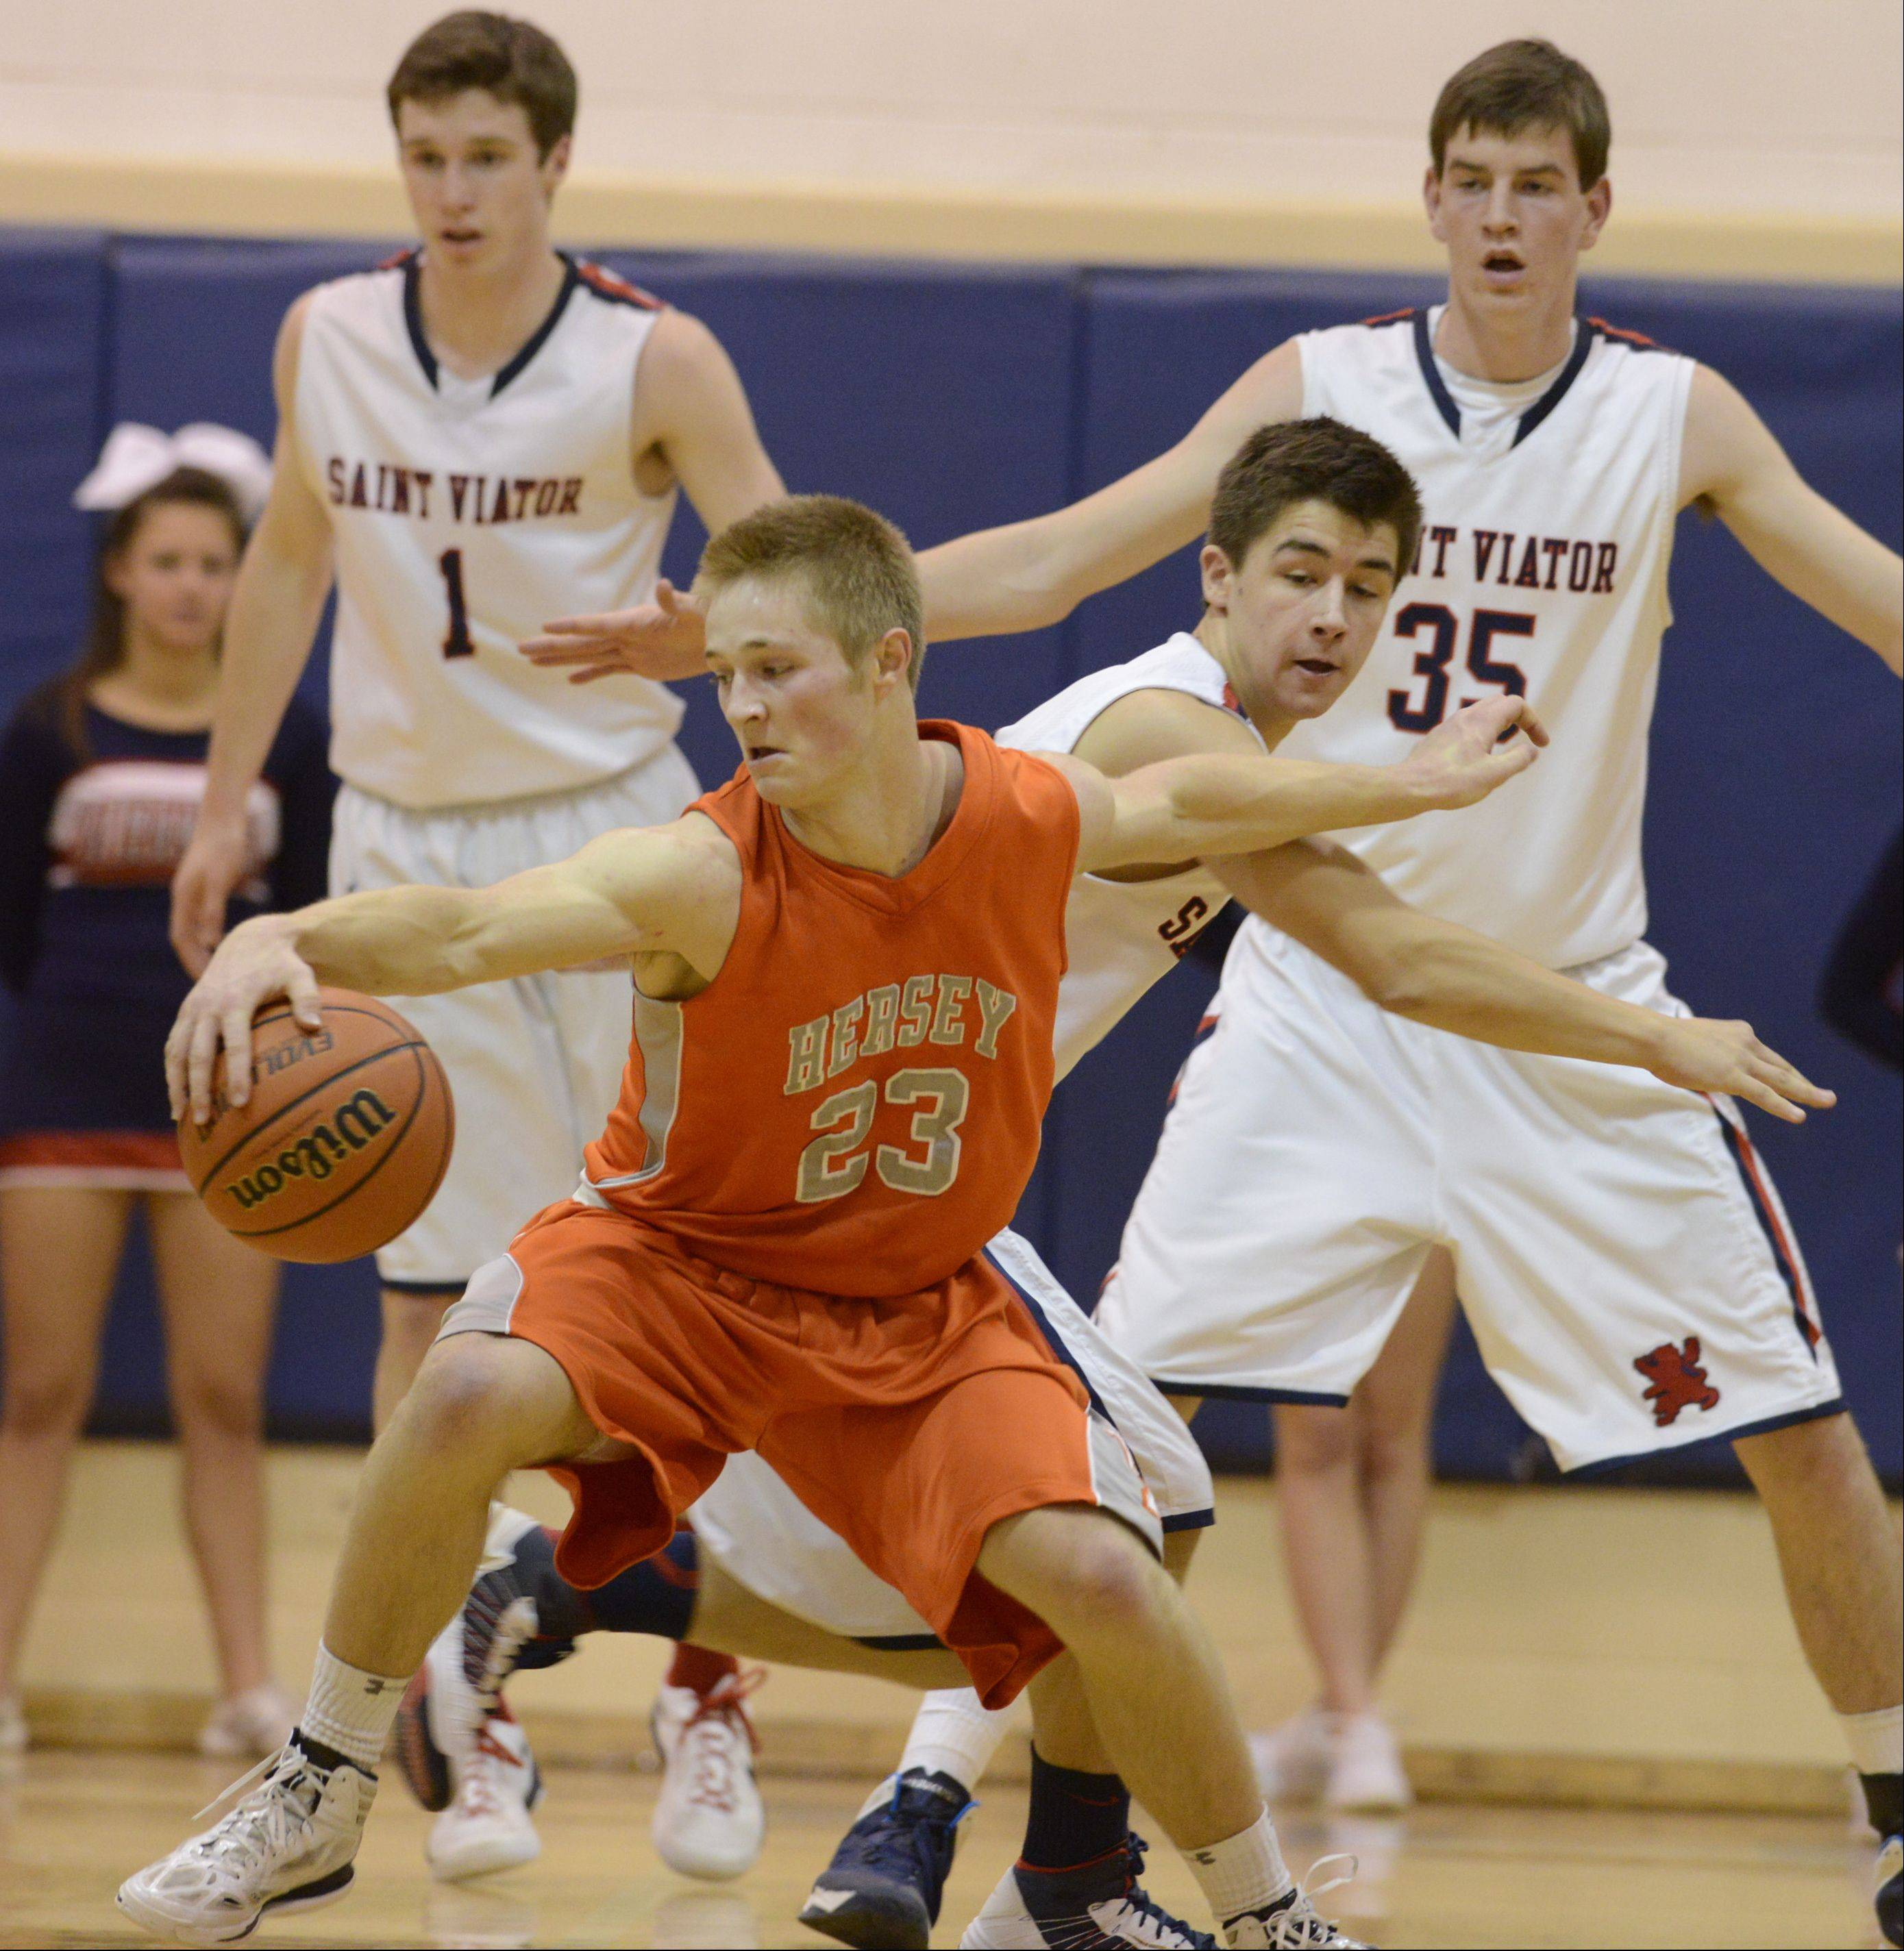 Photos from the St. Viator vs. Hersey boys basketball game on Wednesday, January 29, in Arlington Heights